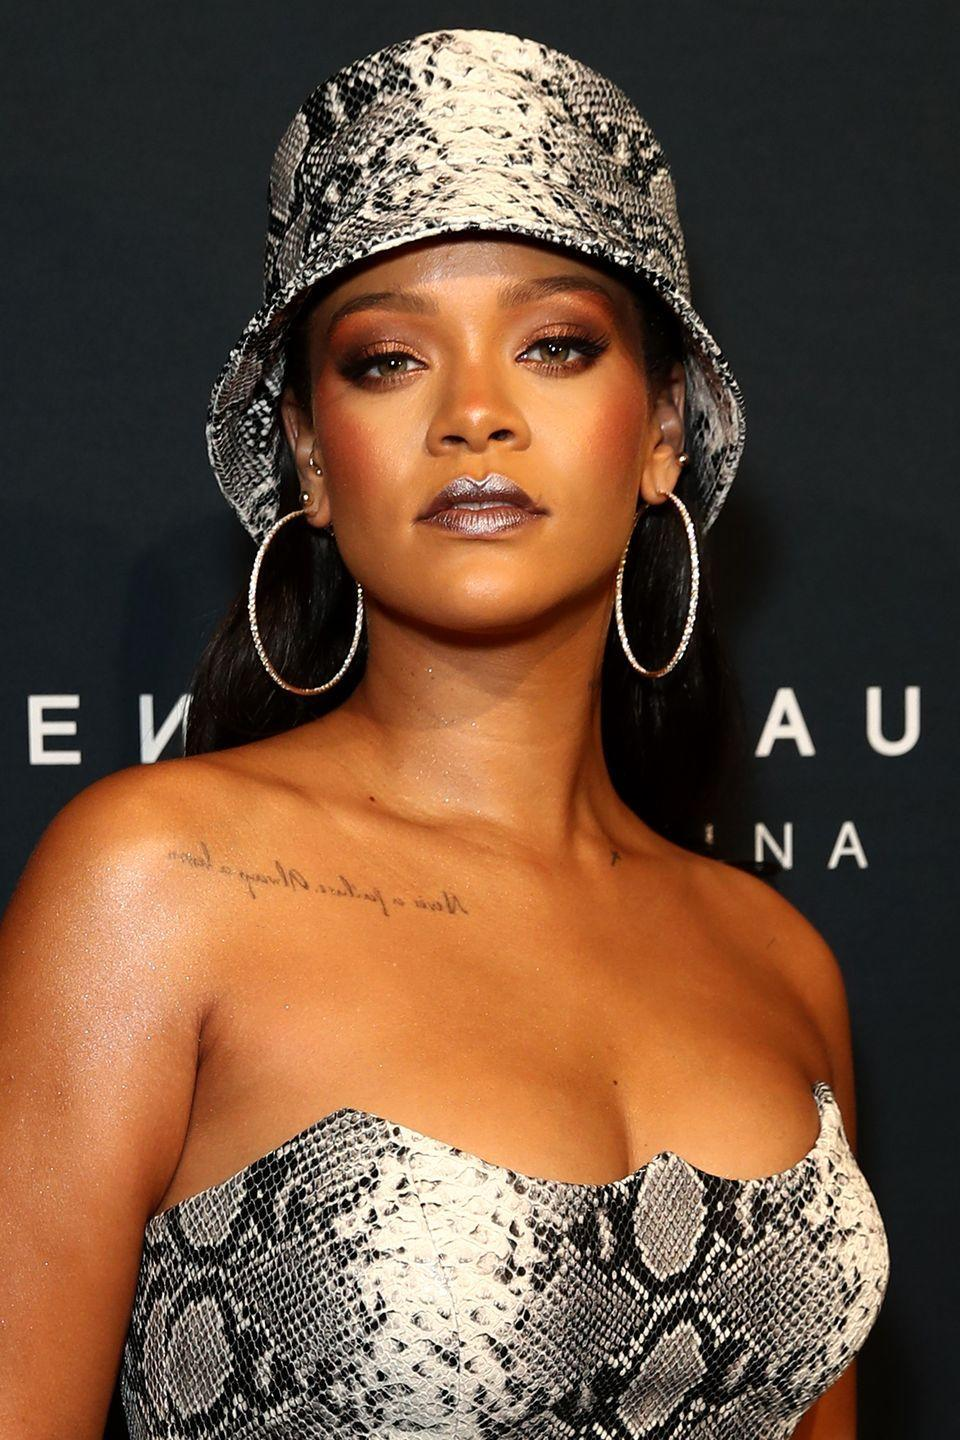 "<p><strong>Born</strong>: Robyn Rihanna Fenty</p><p>Musically, the ""Wild Thoughts"" singer has always gone by her middle name, Rihanna. But the artist told <em><a href=""https://www.rollingstone.com/music/news/rihanna-queen-of-pain-rolling-stones-2011-cover-story-20110606?page=3"" rel=""nofollow noopener"" target=""_blank"" data-ylk=""slk:Rolling Stone"" class=""link rapid-noclick-resp"">Rolling Stone</a> </em>that her friends and family still call her Robyn, especially when they want to get her attention. ""I get kind of numb to hearing Rihanna, Rihanna, Rihanna,"" she <a href=""https://www.rollingstone.com/music/news/rihanna-queen-of-pain-rolling-stones-2011-cover-story-20110606?page=3"" rel=""nofollow noopener"" target=""_blank"" data-ylk=""slk:told"" class=""link rapid-noclick-resp"">told</a> the publication. ""When I hear Robyn, I pay attention.""</p>"